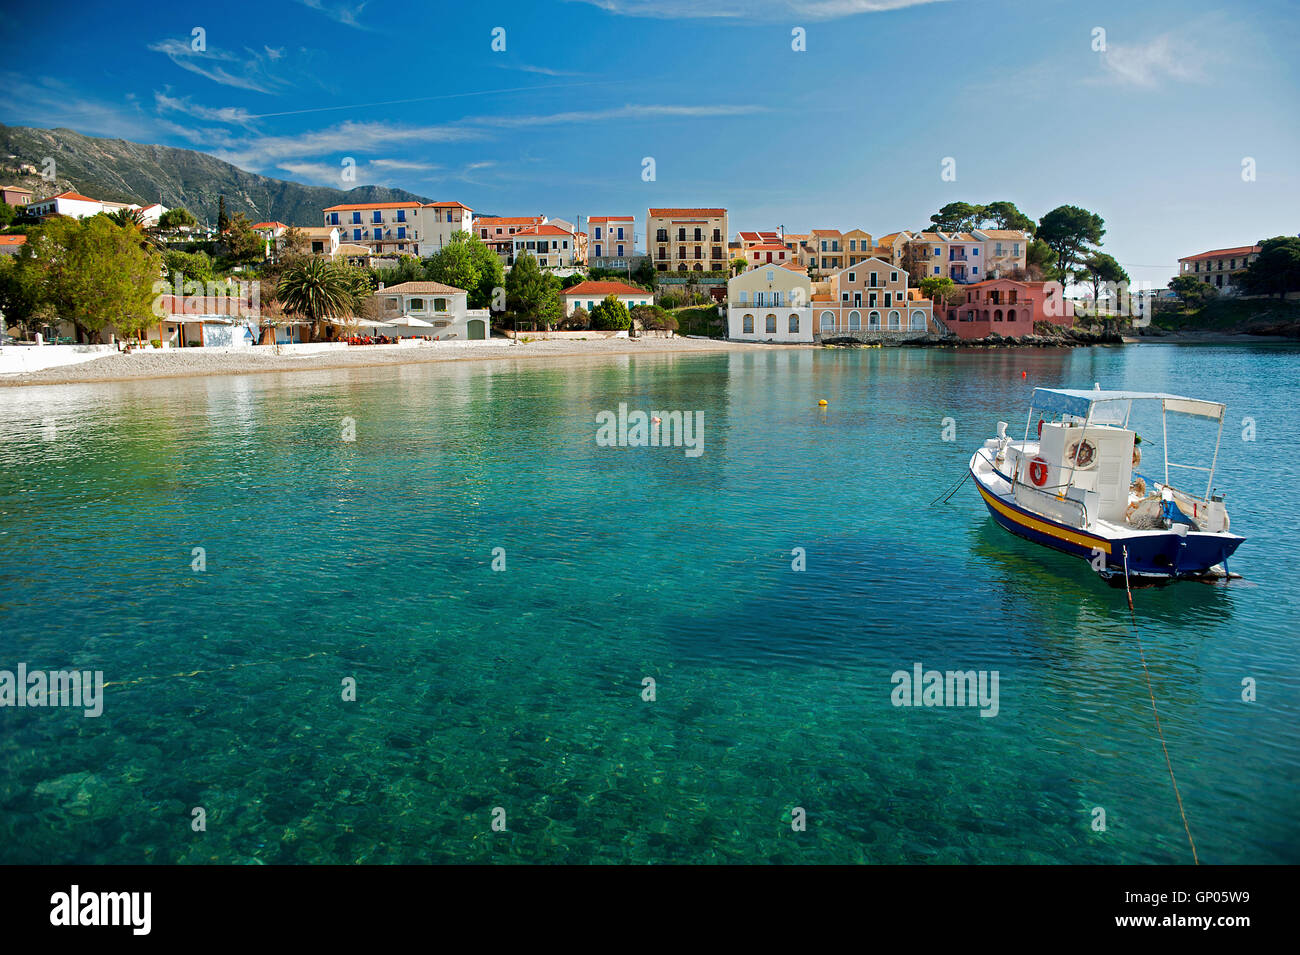 A boat moored in the tranquil crystal-clear waters at Assos one of the most beautiful locations on the Greek Island - Stock Image